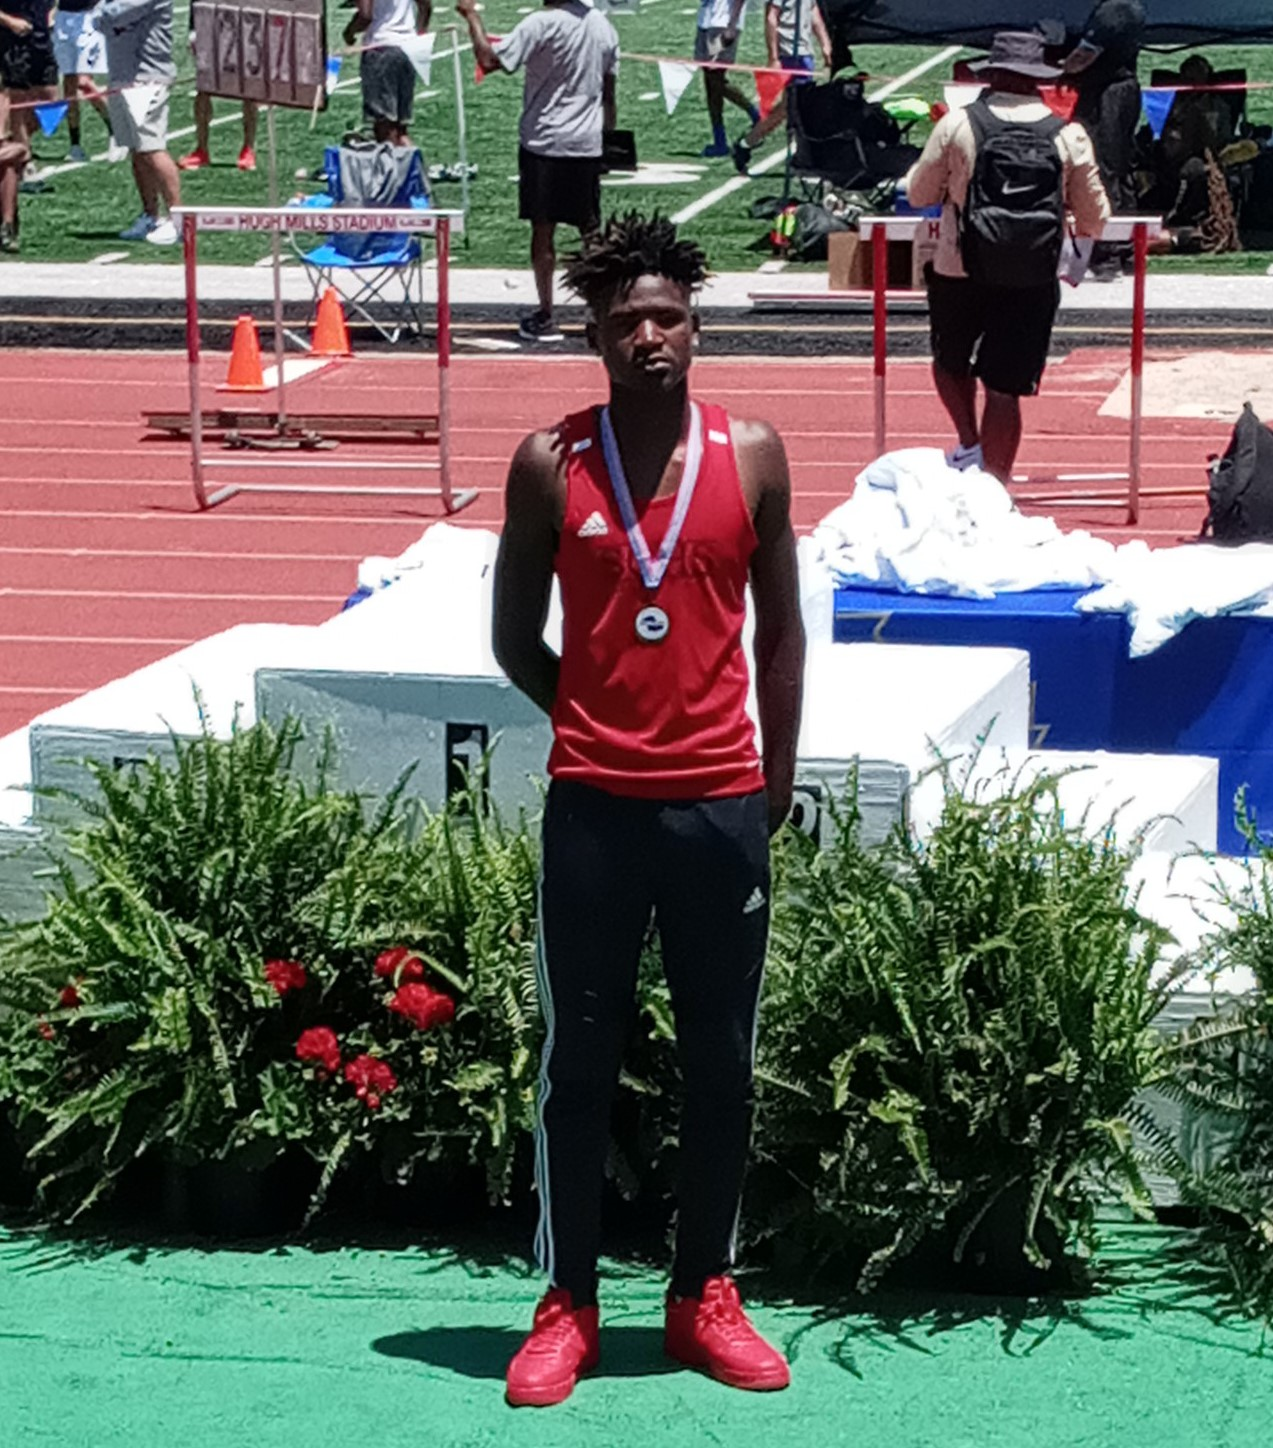 Phillip Baynes places 7th at GHSA State Track Meet